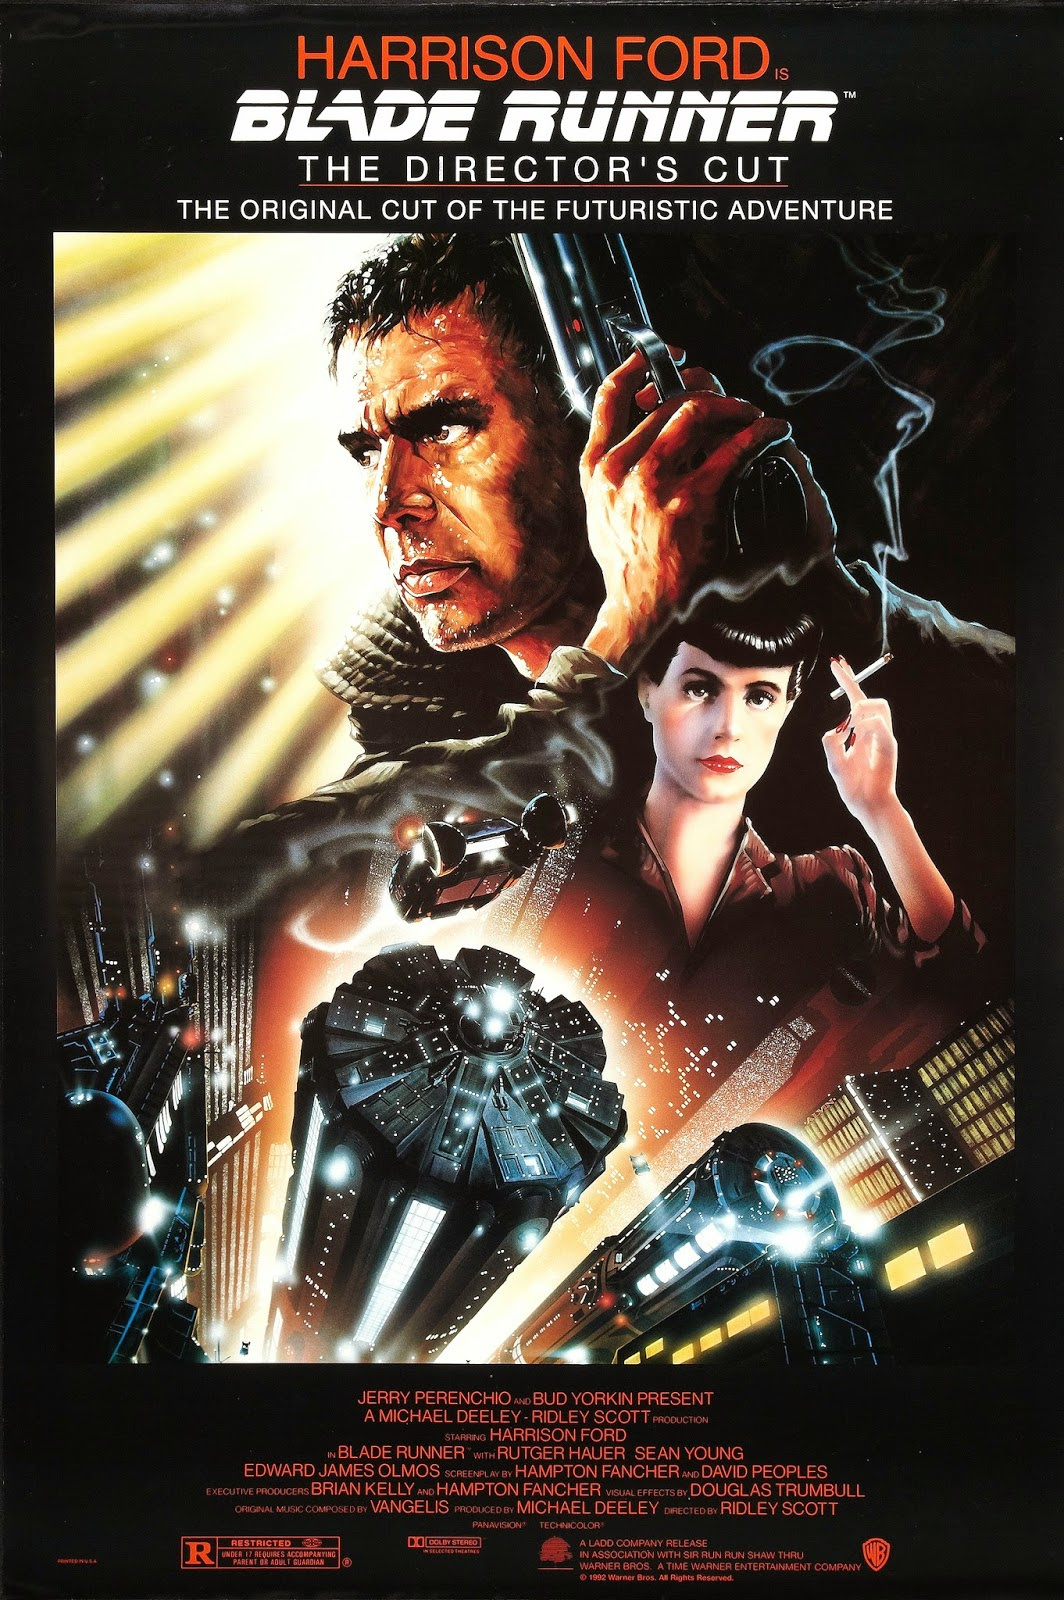 Blade Runner 1982 film ridley scott harrison ford sci fi philip K dick poster